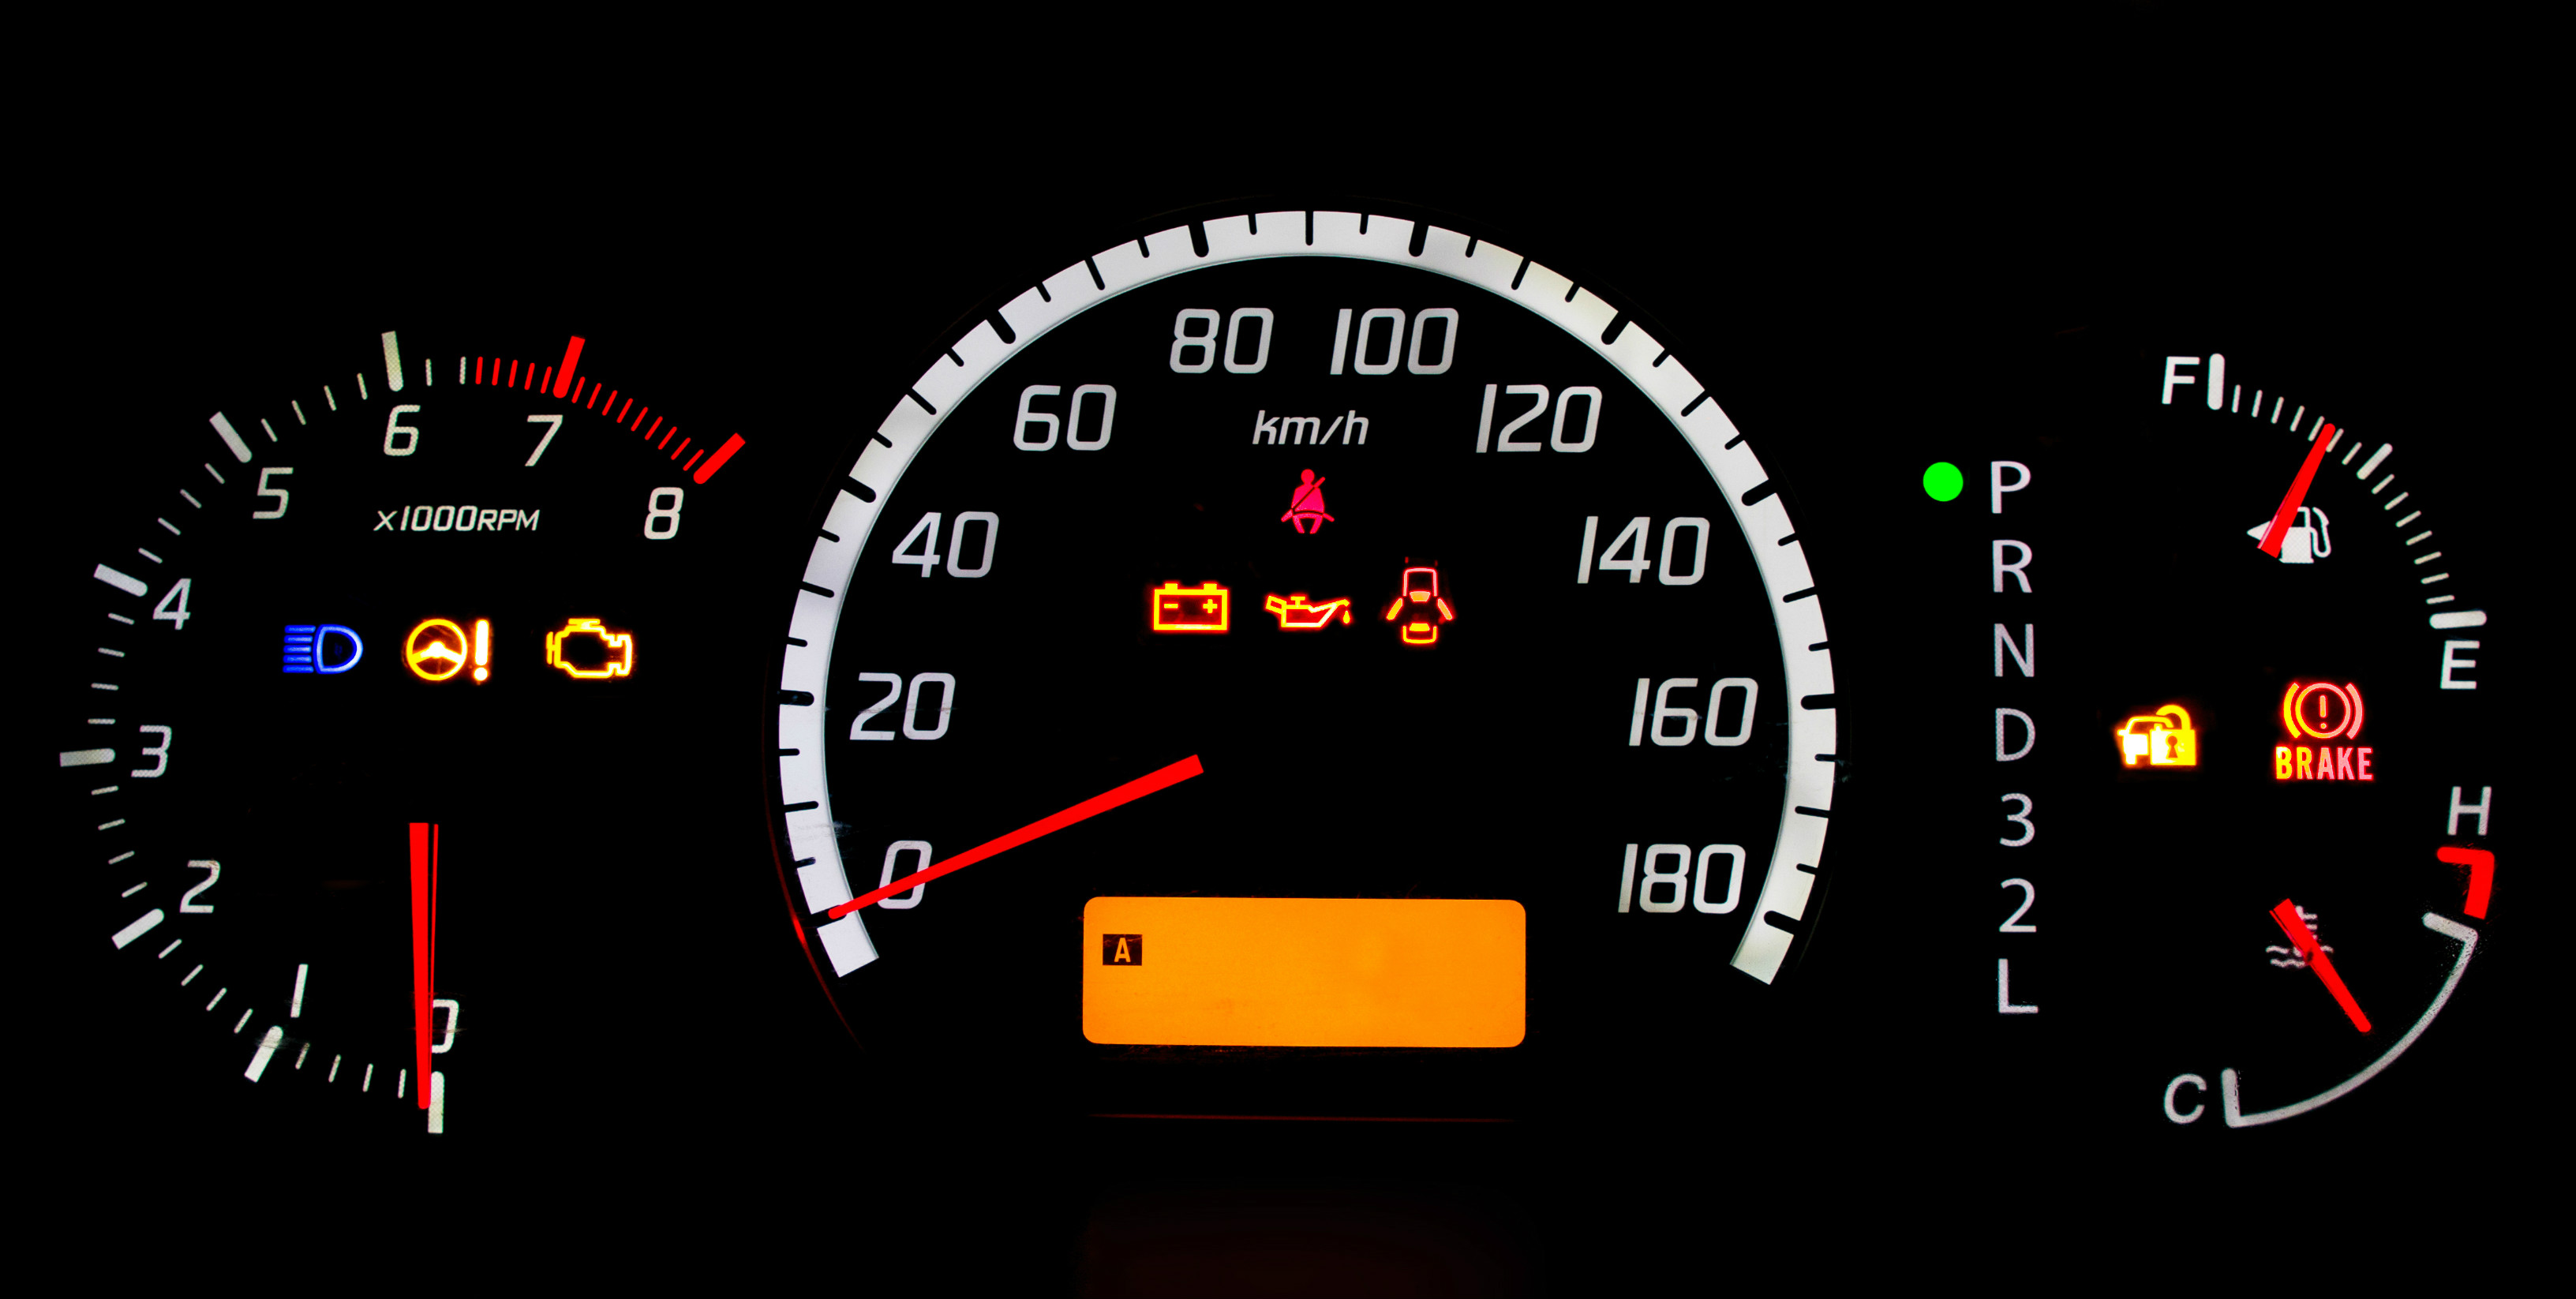 What Do All Those Lights Mean On My Dashboard Willards Garage